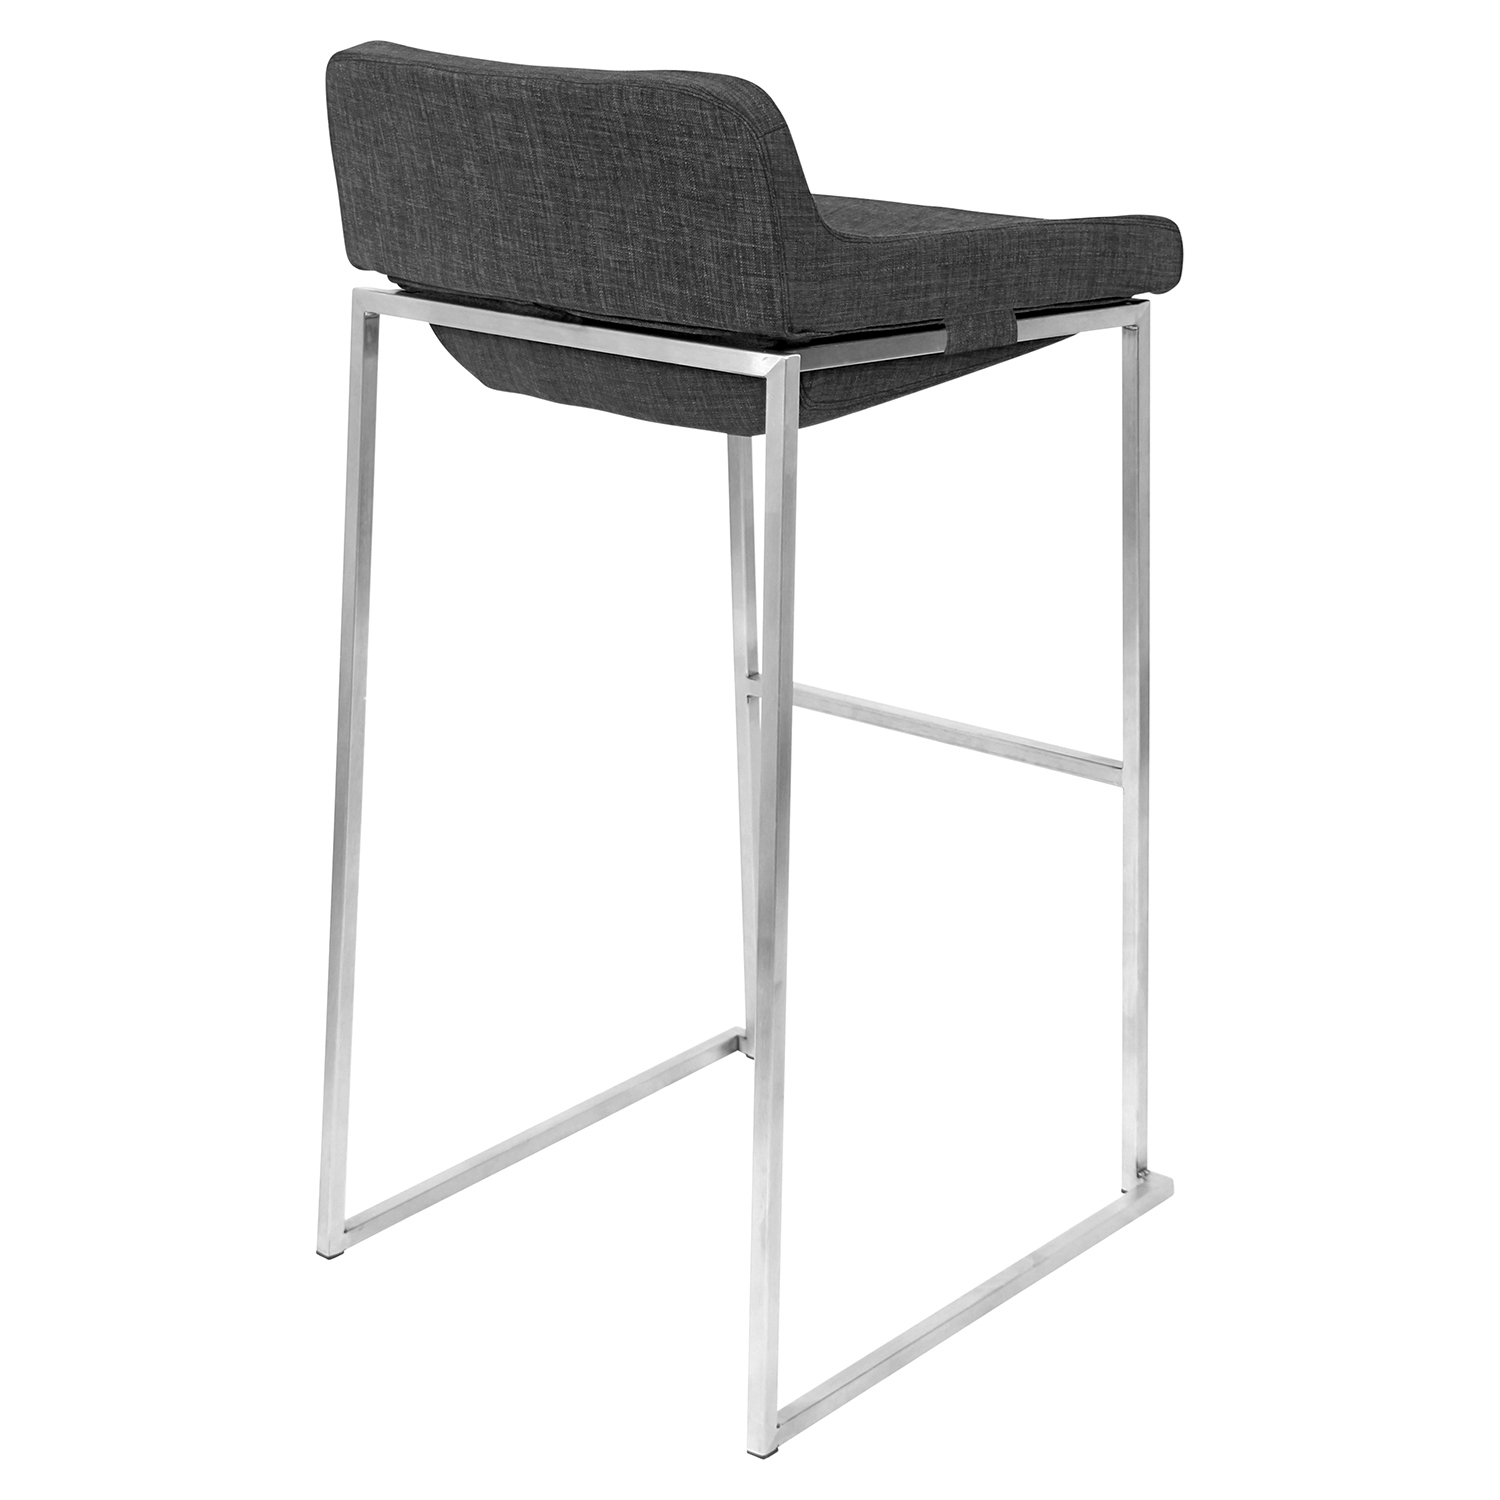 Satori Stackable Barstool - Charcoal (Set of 2) - LMS-BS-STR-CHAR2